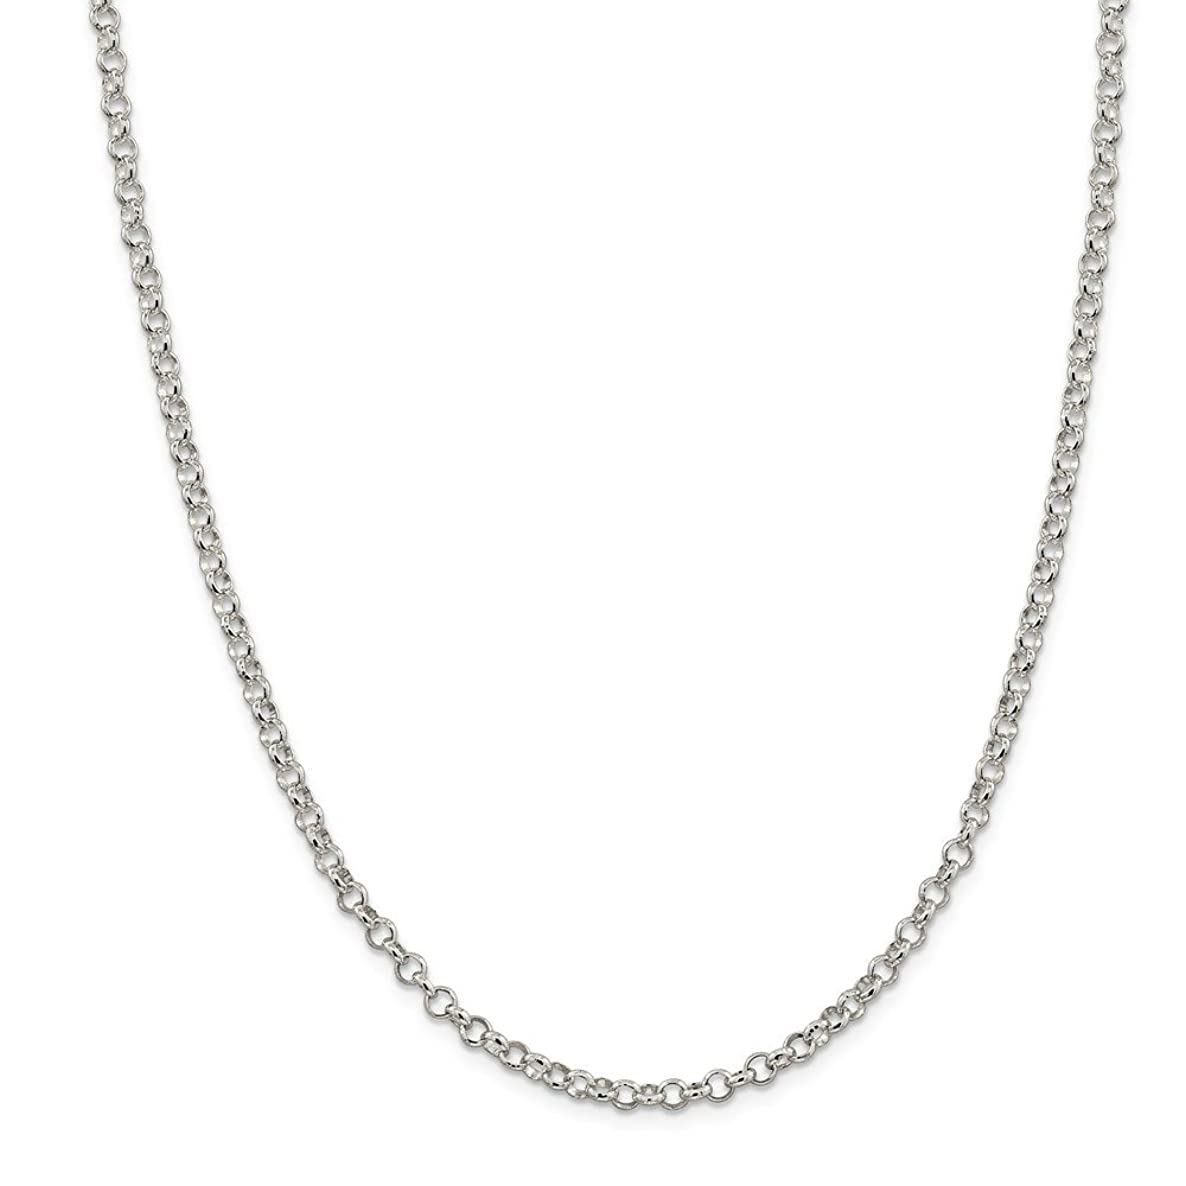 Sterling Silver Polished Lobster Claw Closure 4.0mm Rolo Chain Necklace - Lobster Claw - Length Options: 16 18 20 24 30 36